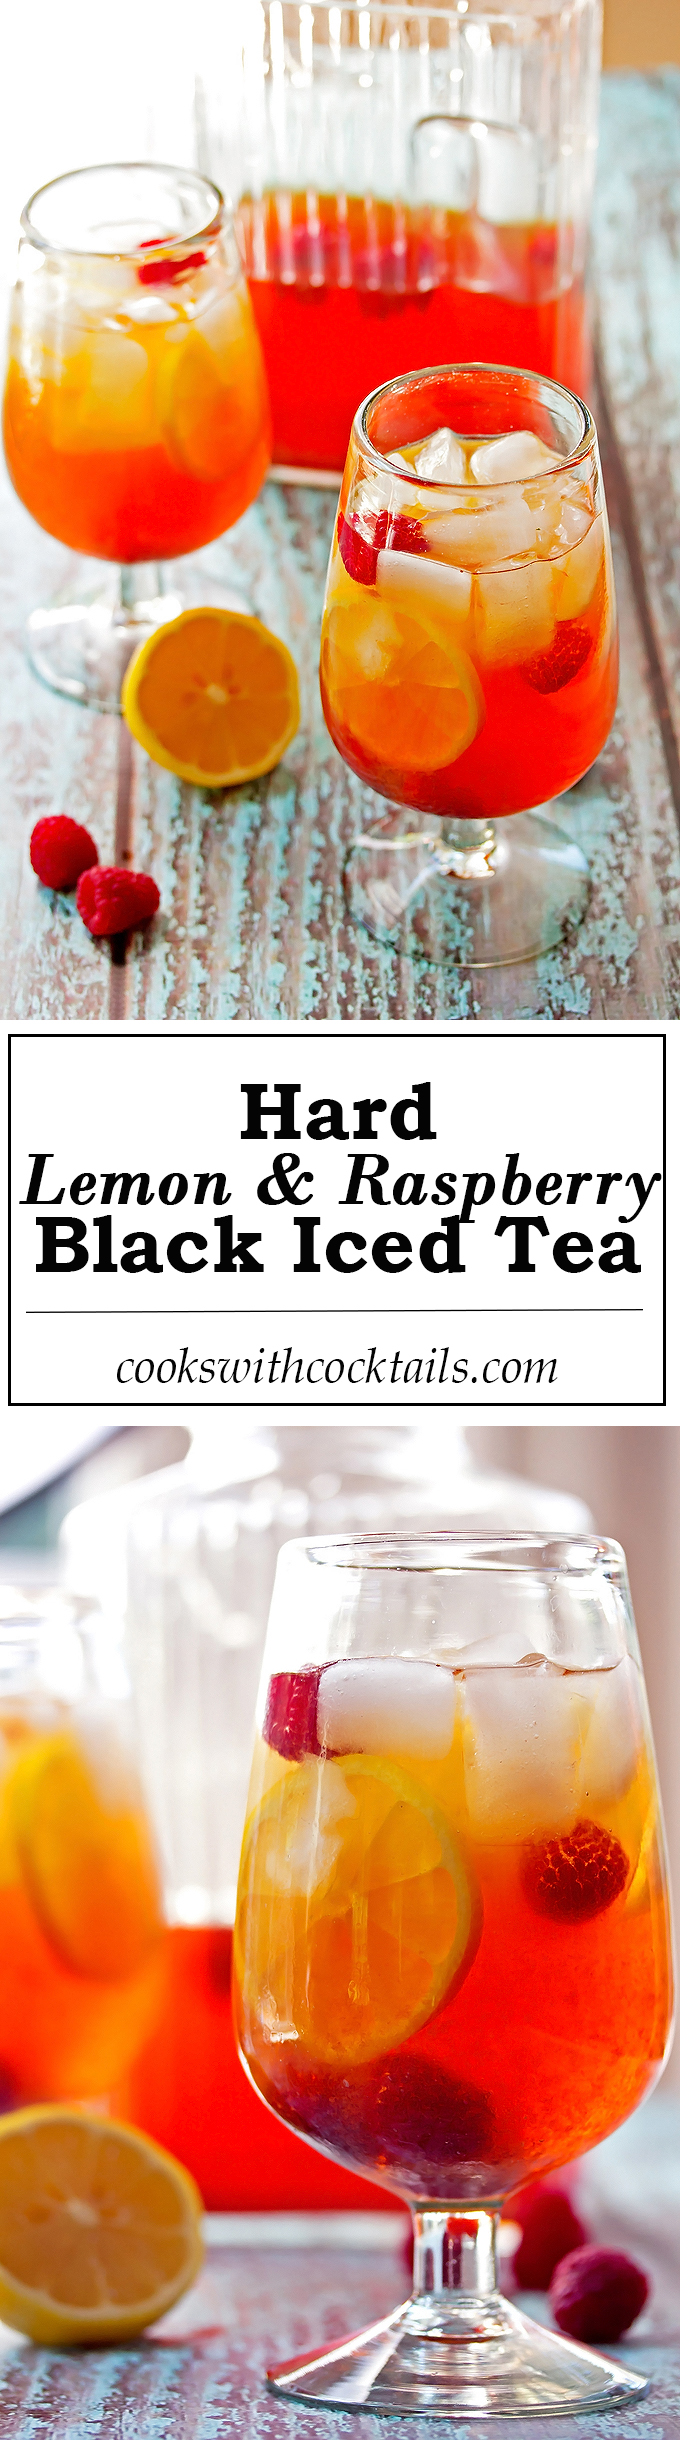 Hard Lemon & Raspberry Iced Black Tea